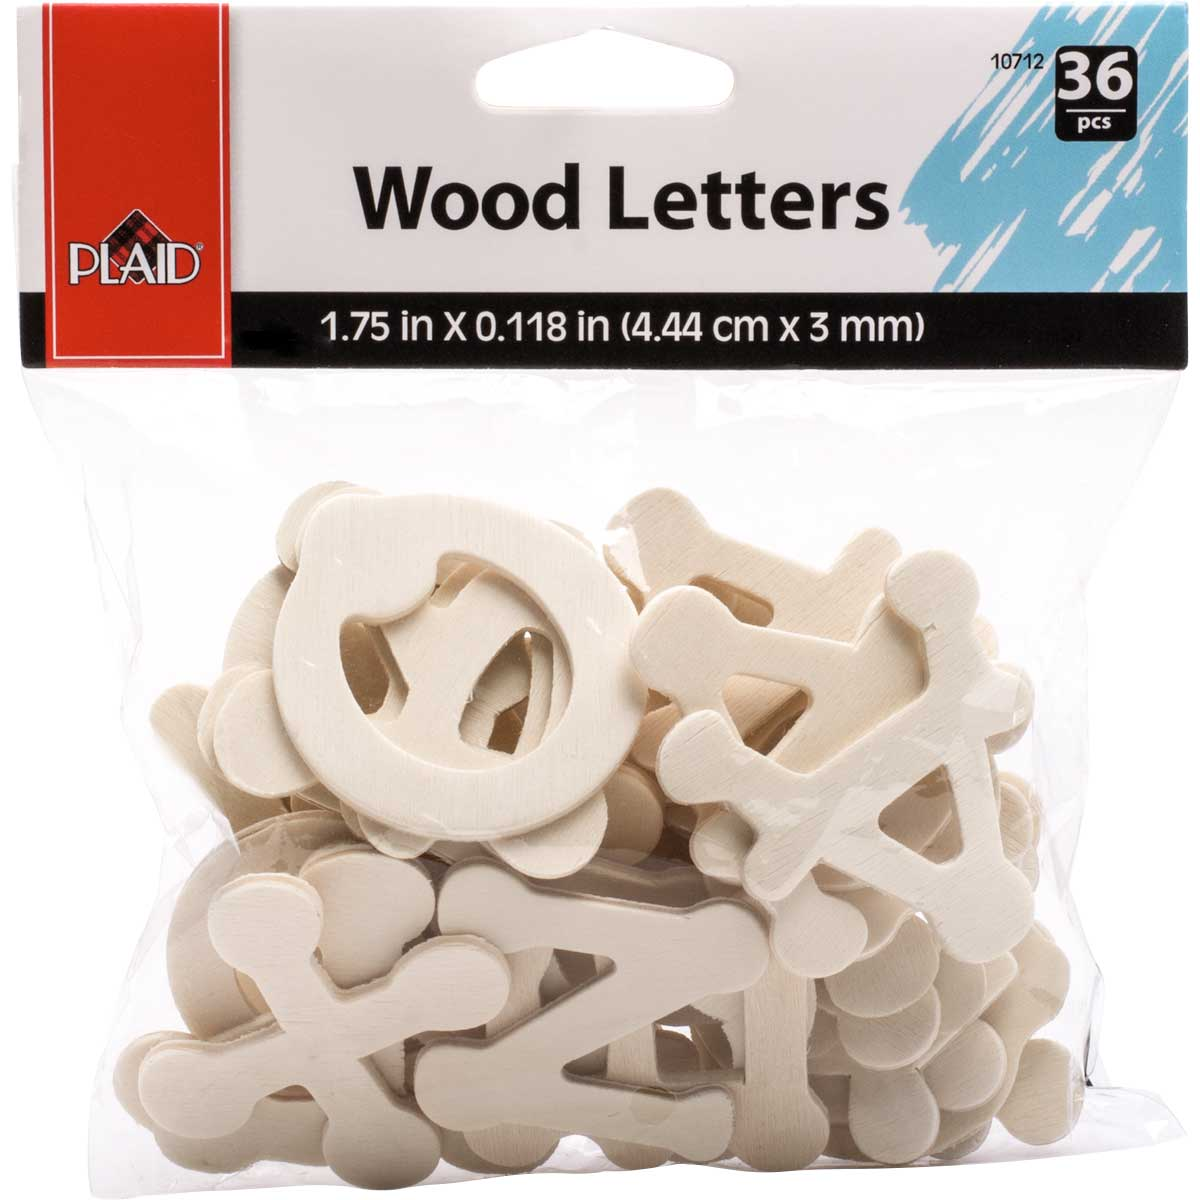 Plaid ® Wood Surfaces - Letter Packs - Dot to Dot - 10712E